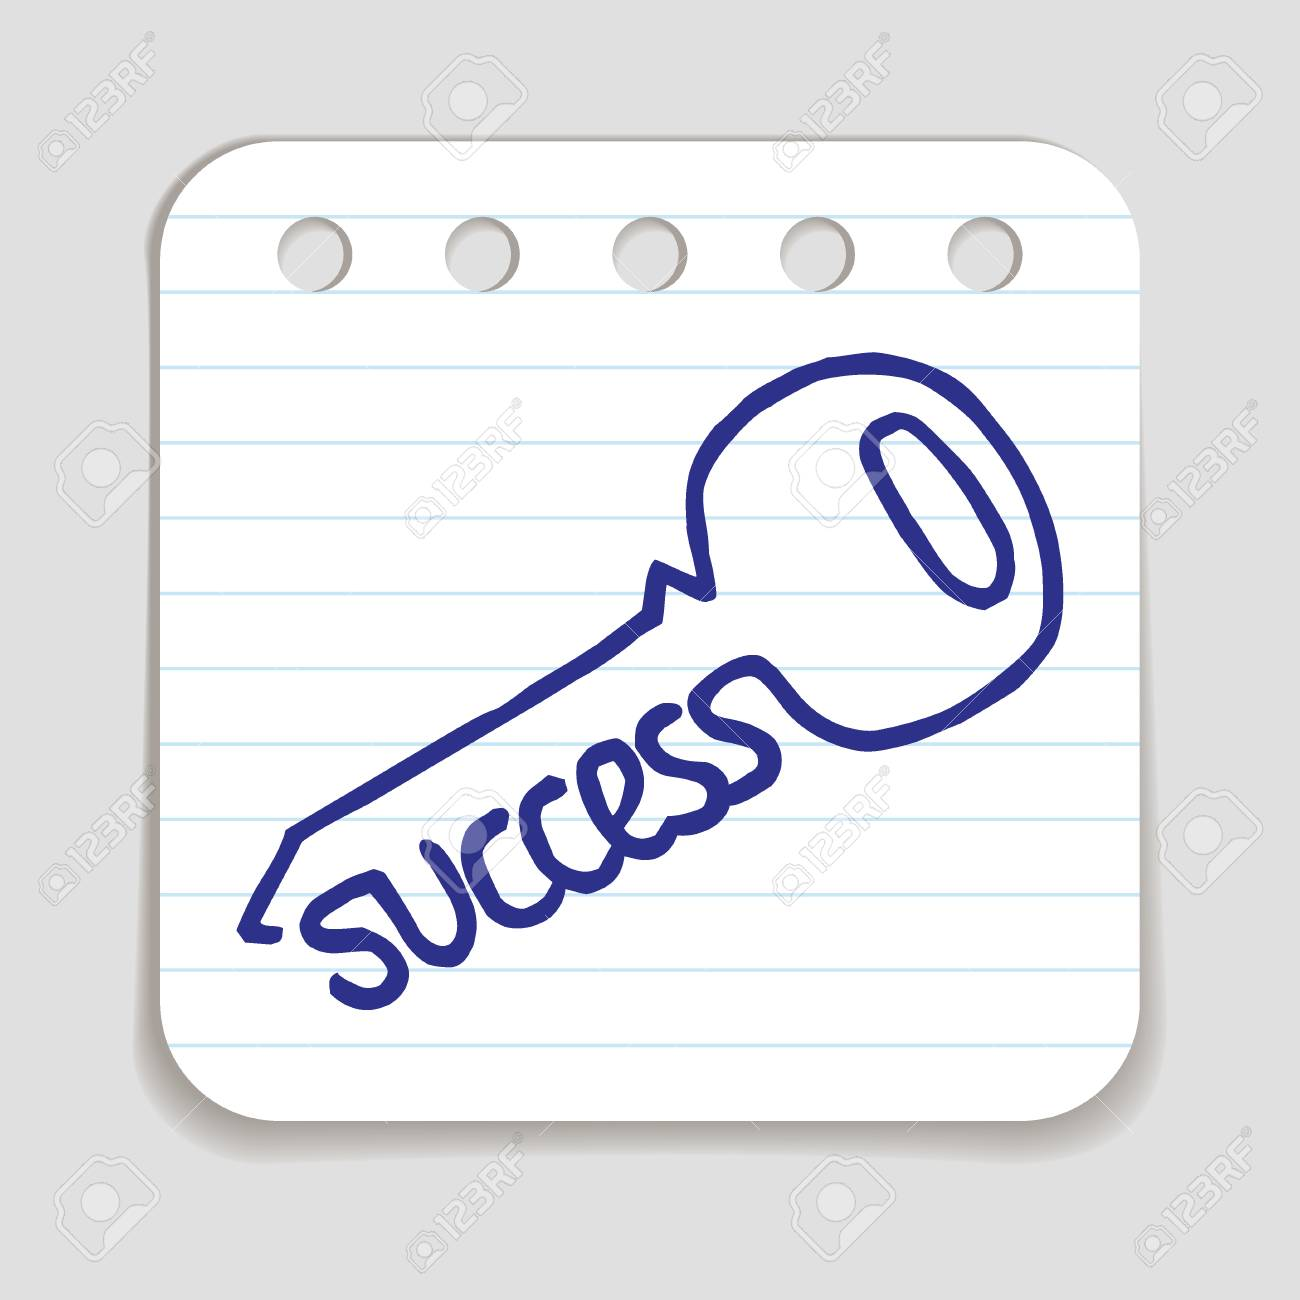 Doodle key to success icon blue pen hand drawn infographic symbol doodle key to success icon blue pen hand drawn infographic symbol on a notepaper piece biocorpaavc Choice Image